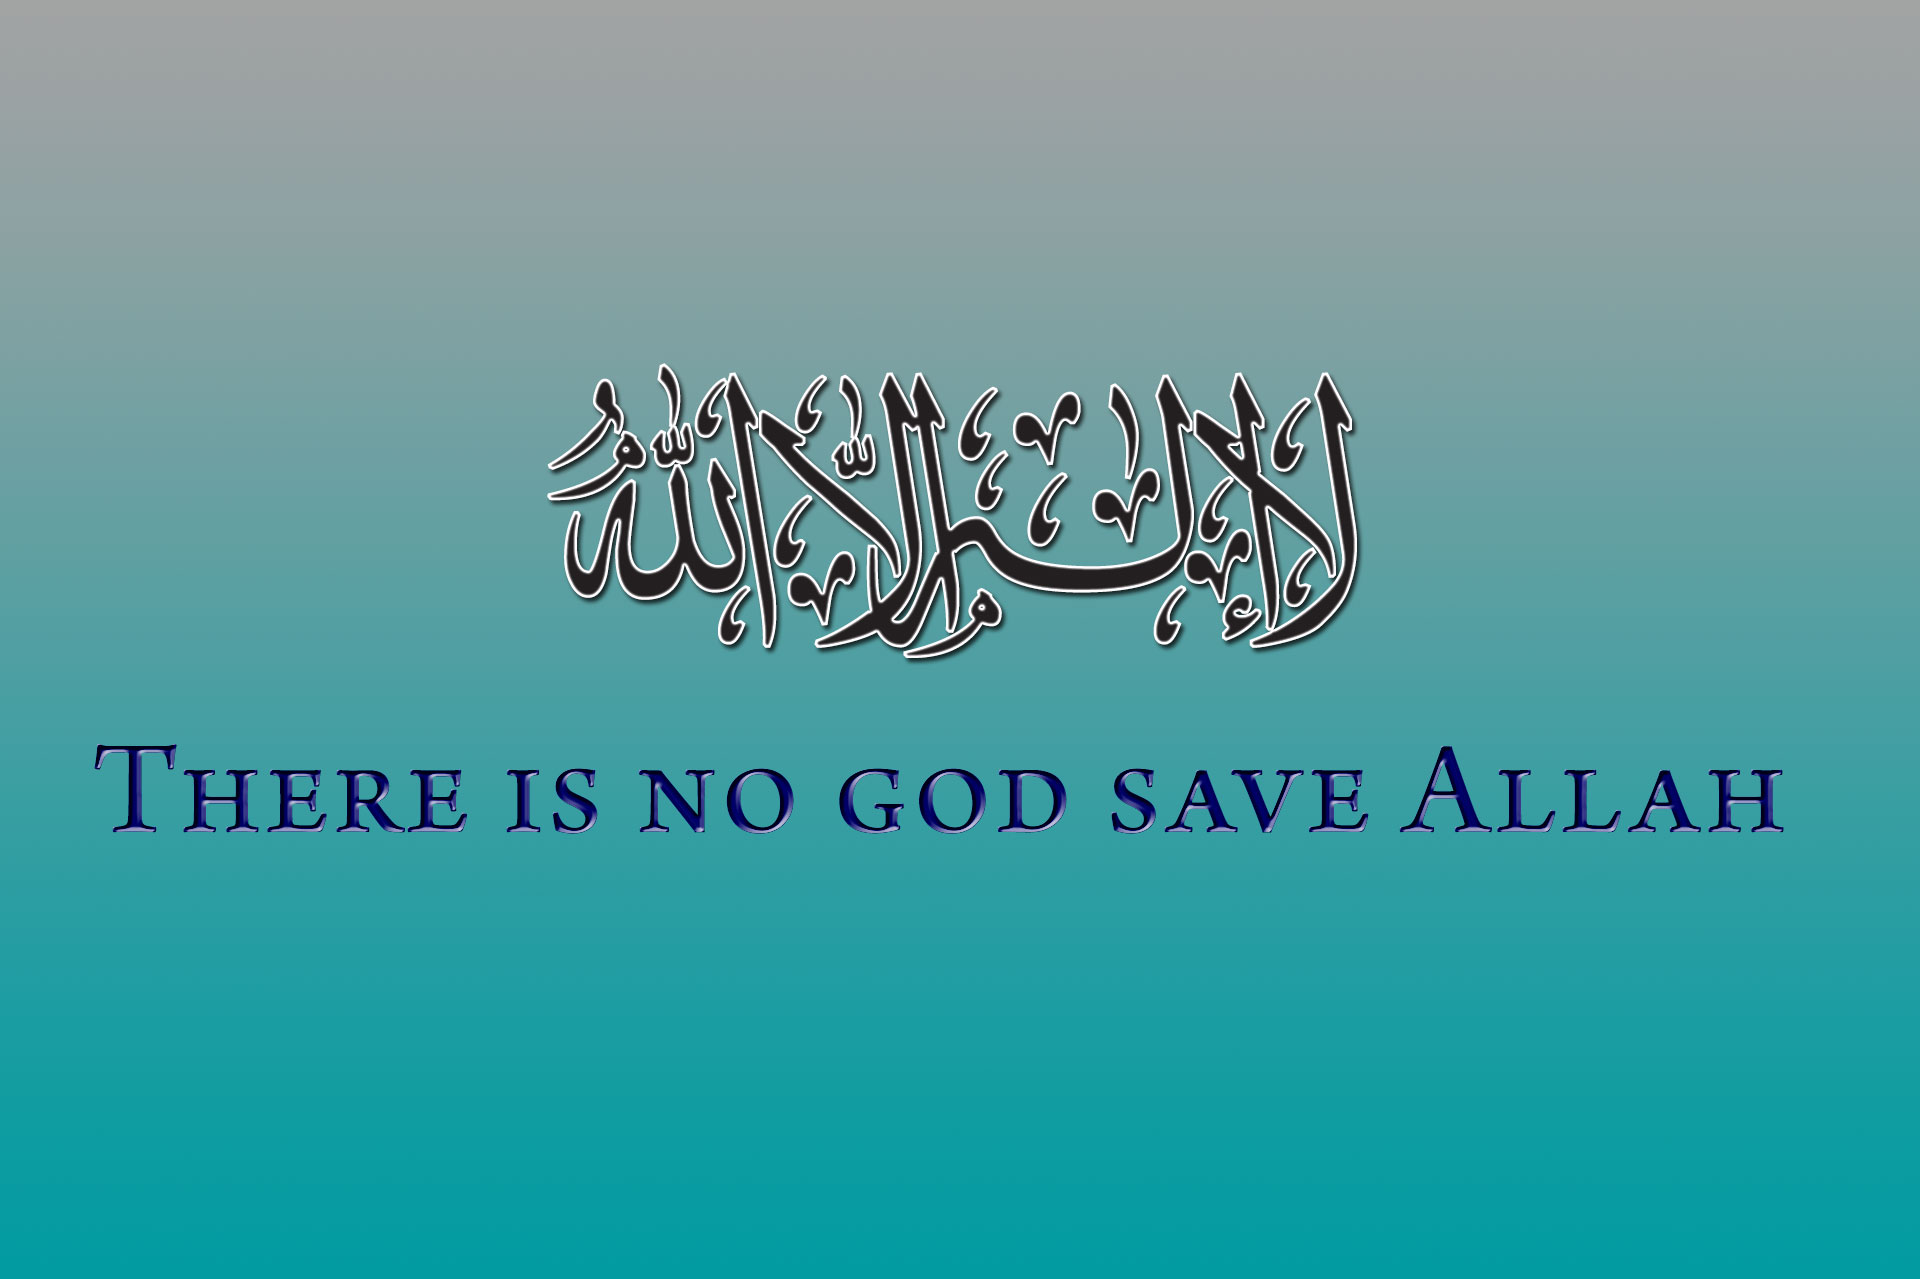 The Oneness of God in the Qur'an